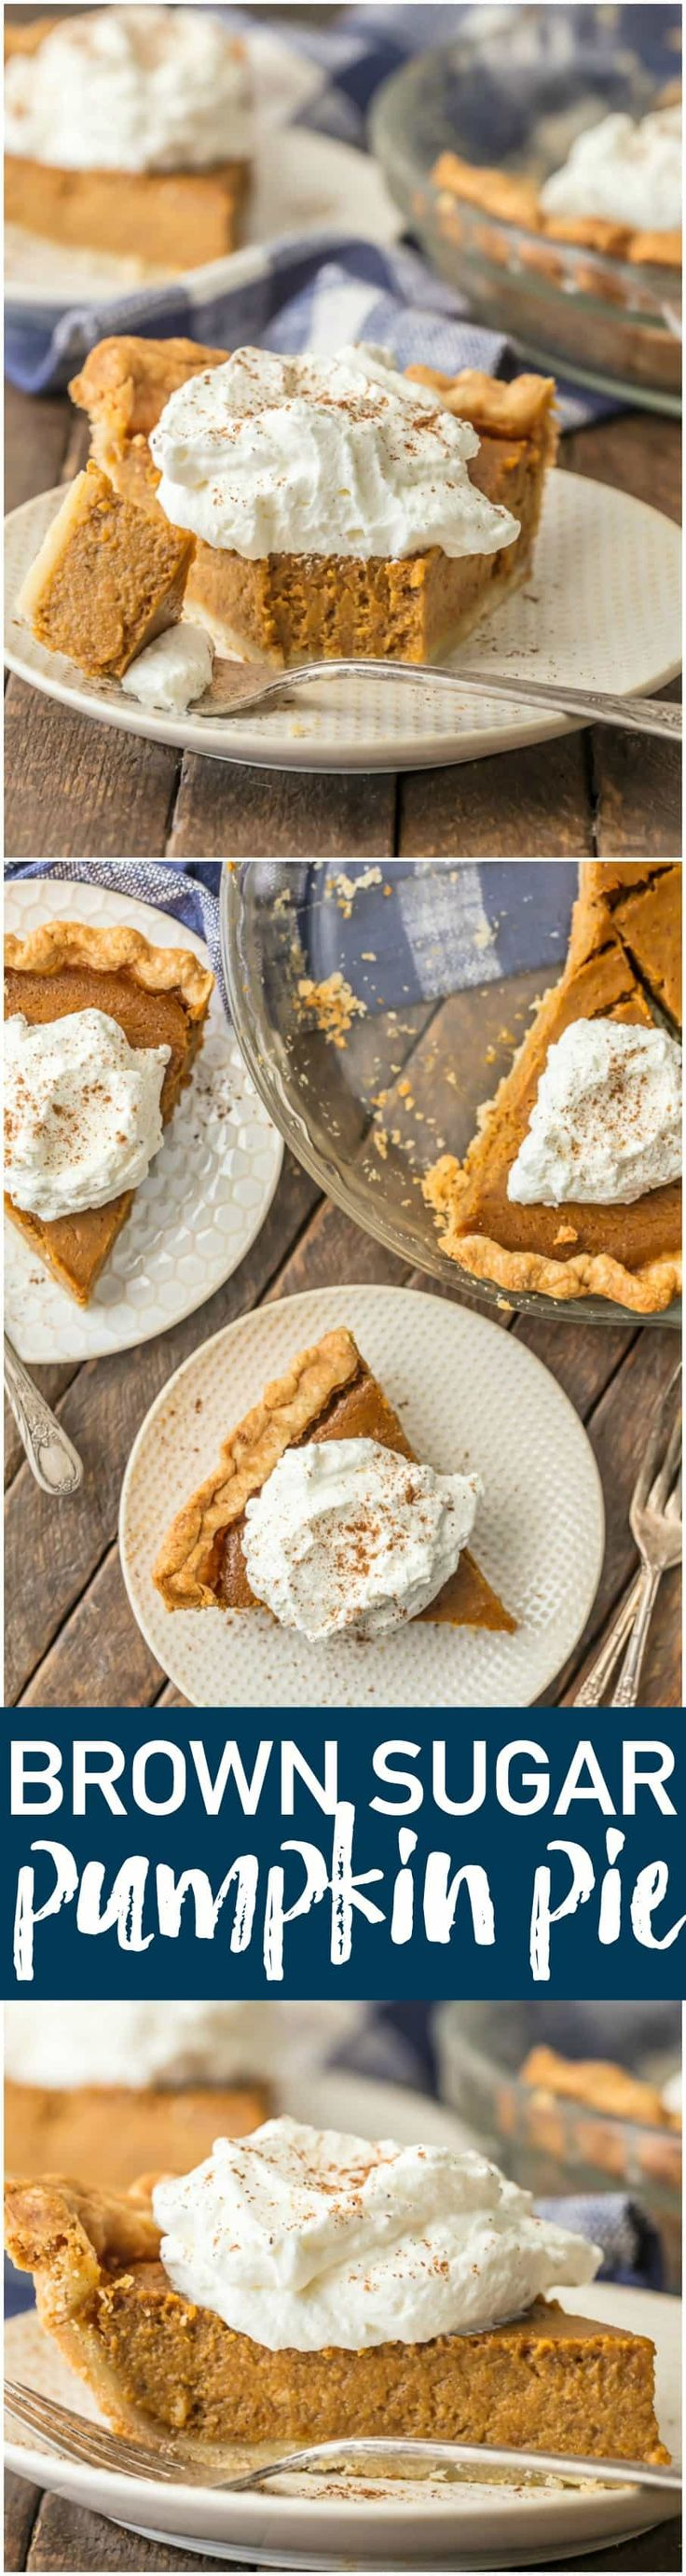 Elevate a classic with BROWN SUGAR PUMPKIN PIE! Utterly delicious and just begging to be the star of your Thanksgiving menu. Favorite pie EVER. #thanksgiving #pumpkinpie #easyrecipe via @beckygallhardin